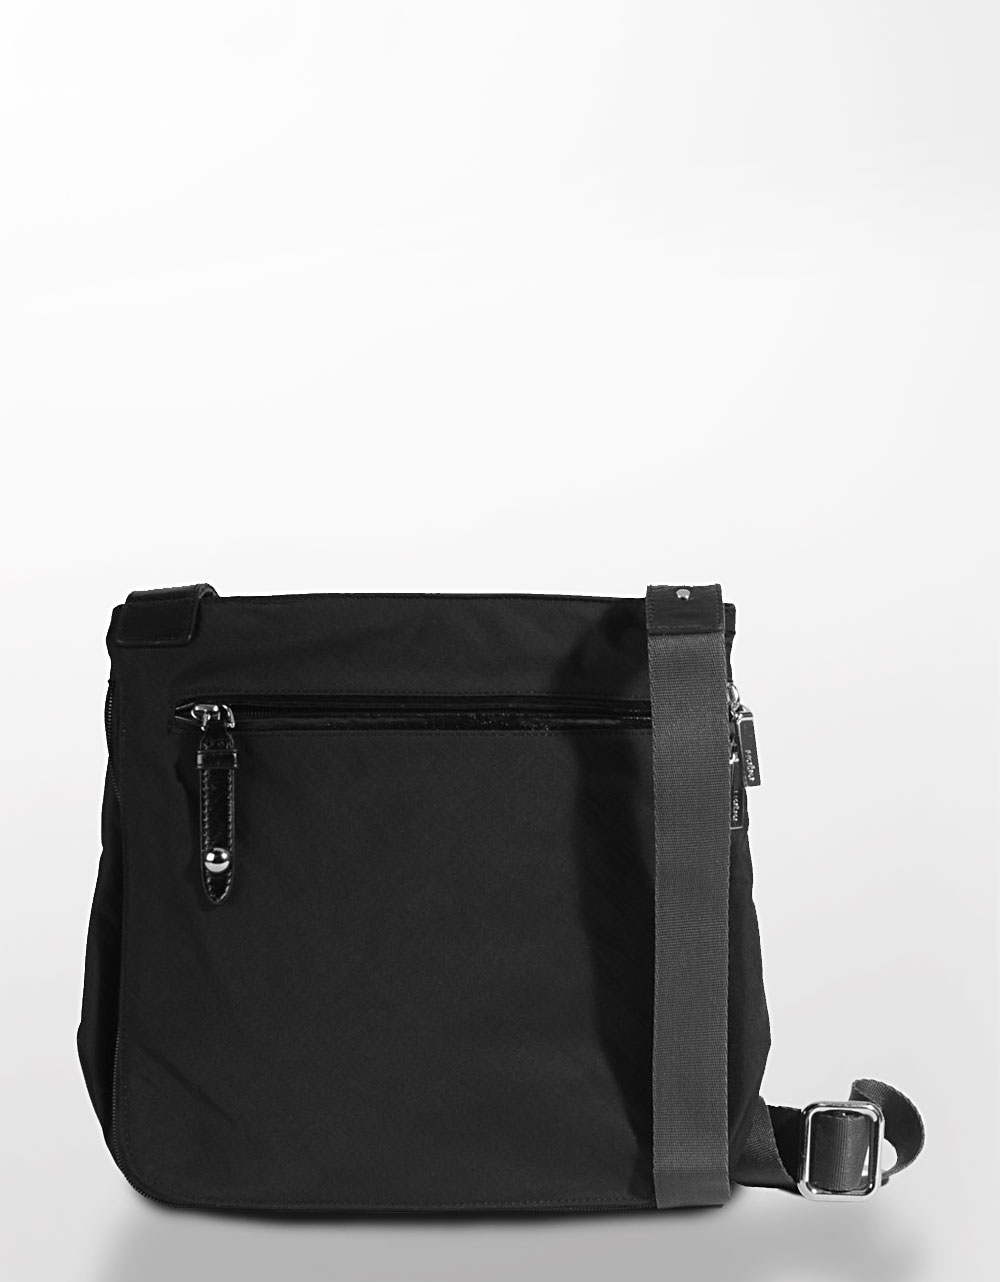 Hobo international London Nylon Cross-Body Bag in Black | Lyst